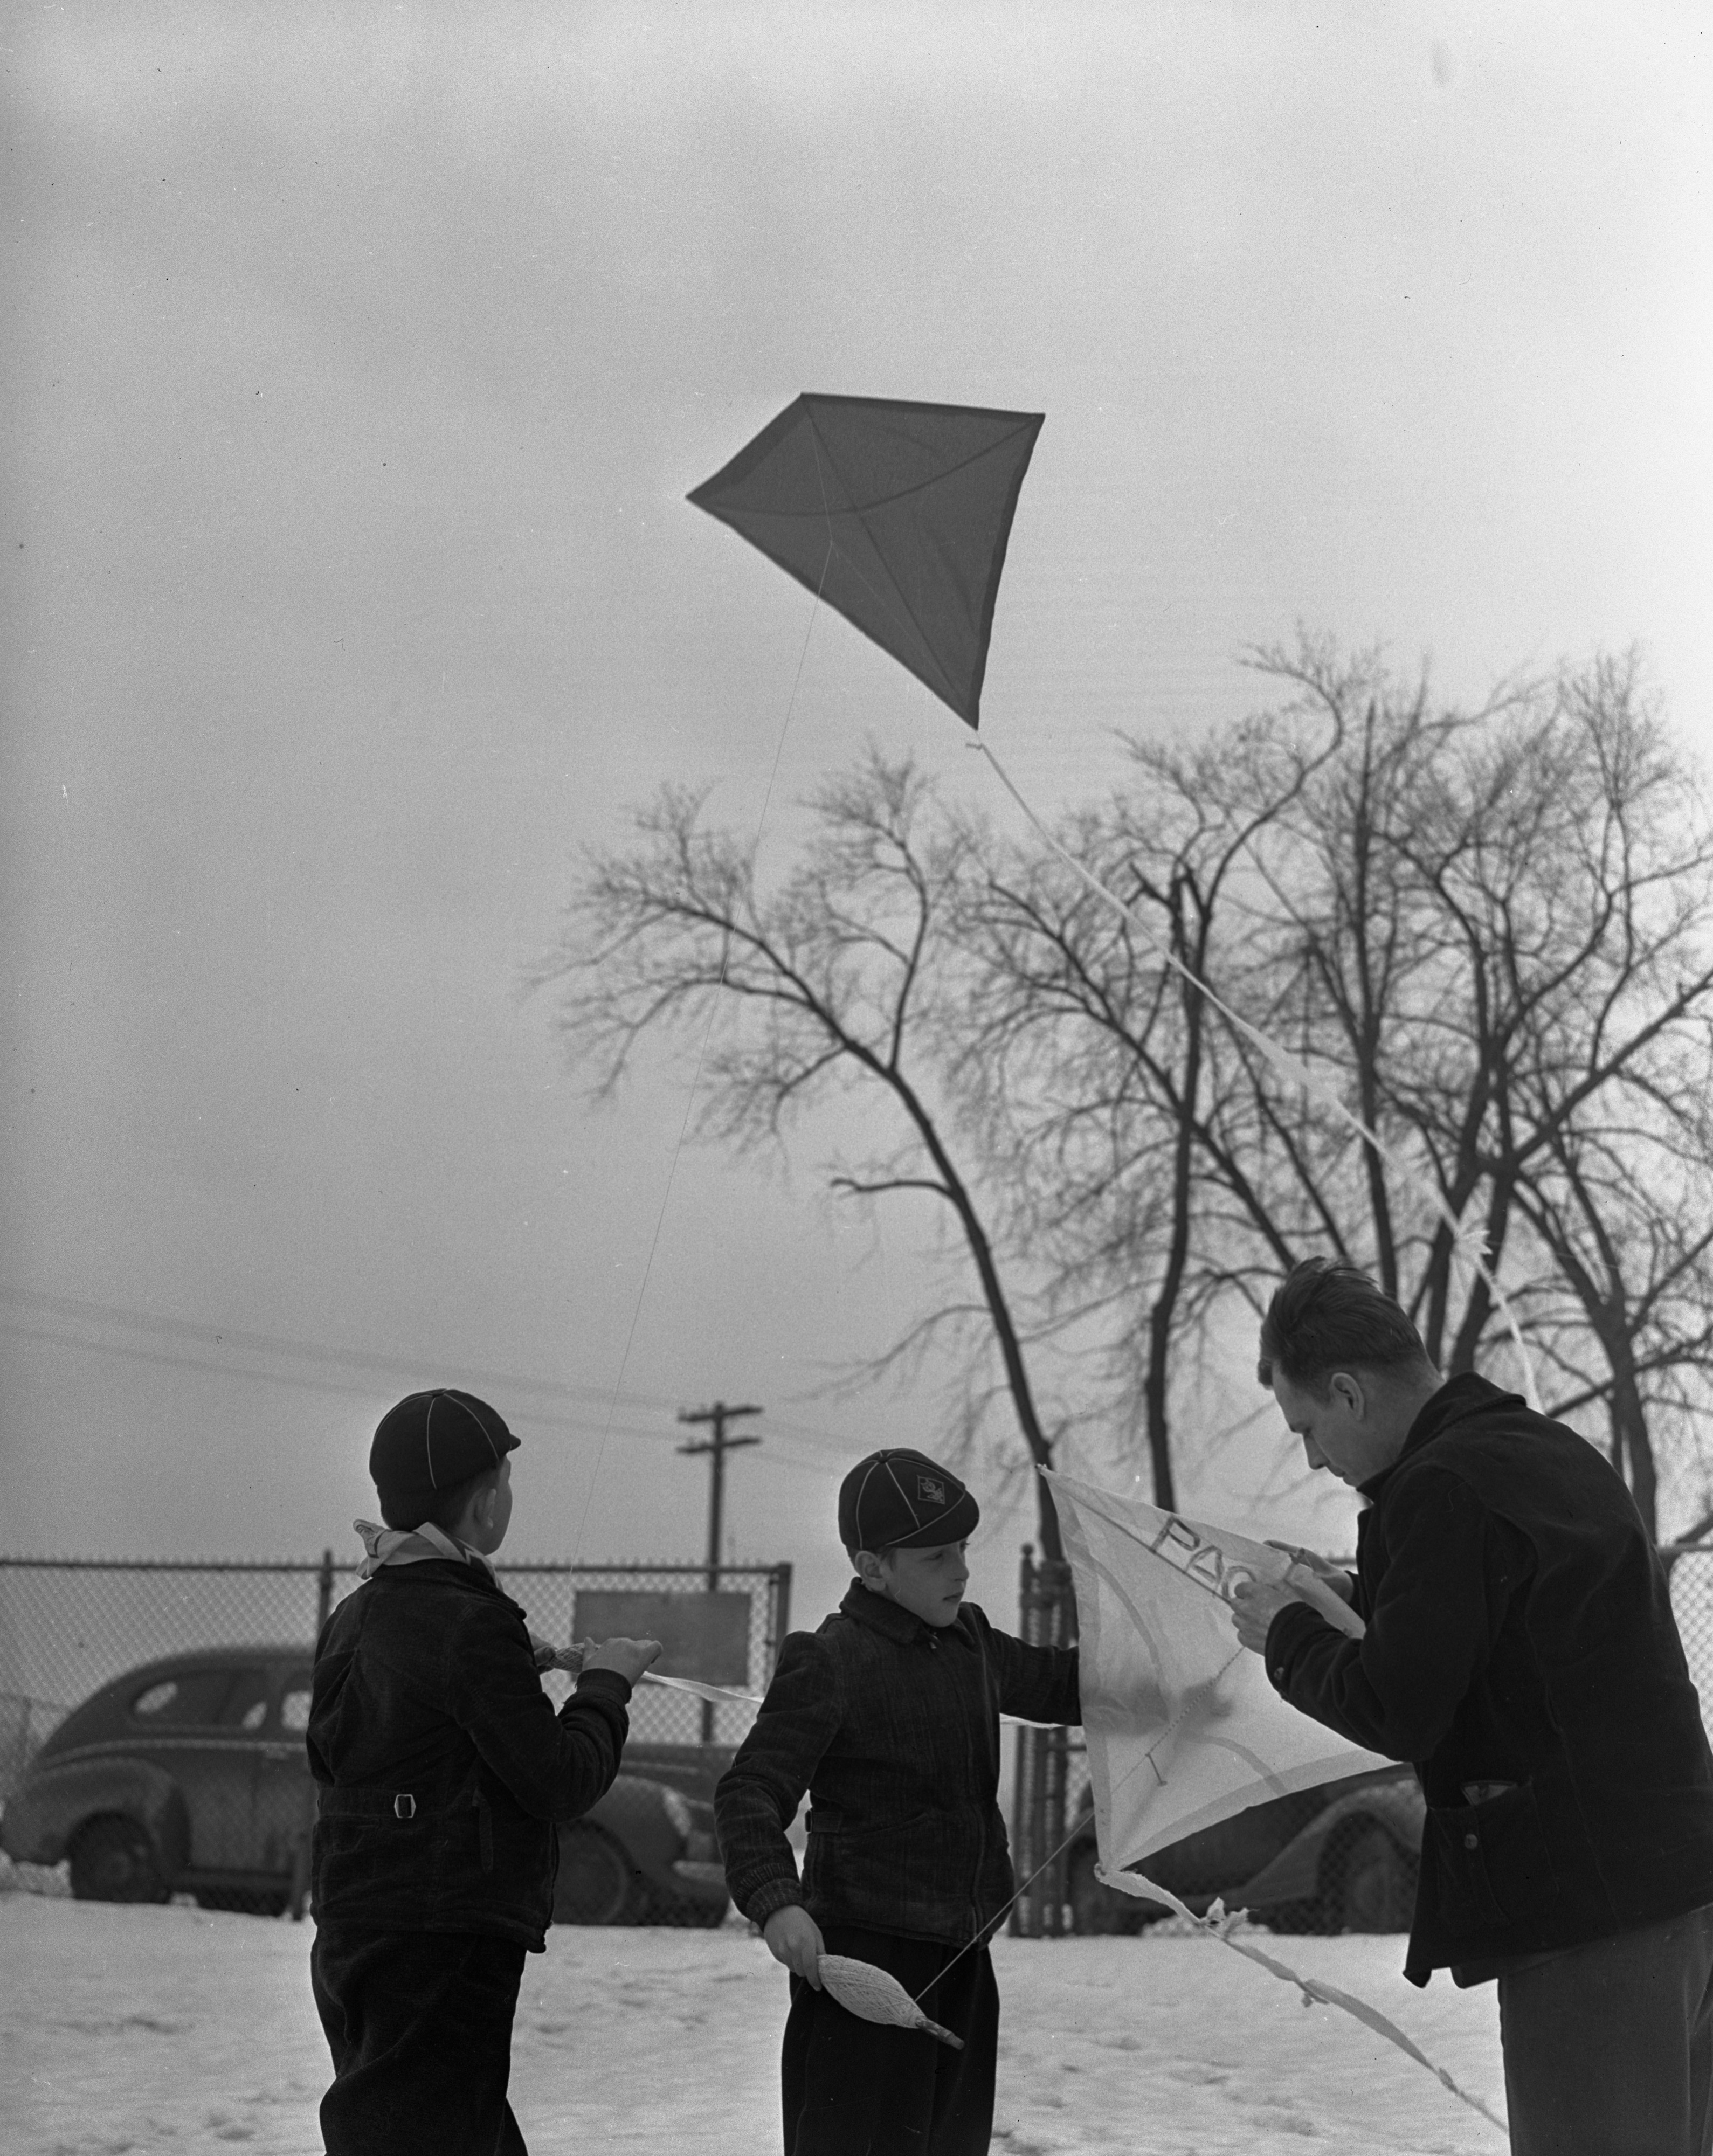 American Legion kite flying contest on Stadium Blvd, March 1940 image